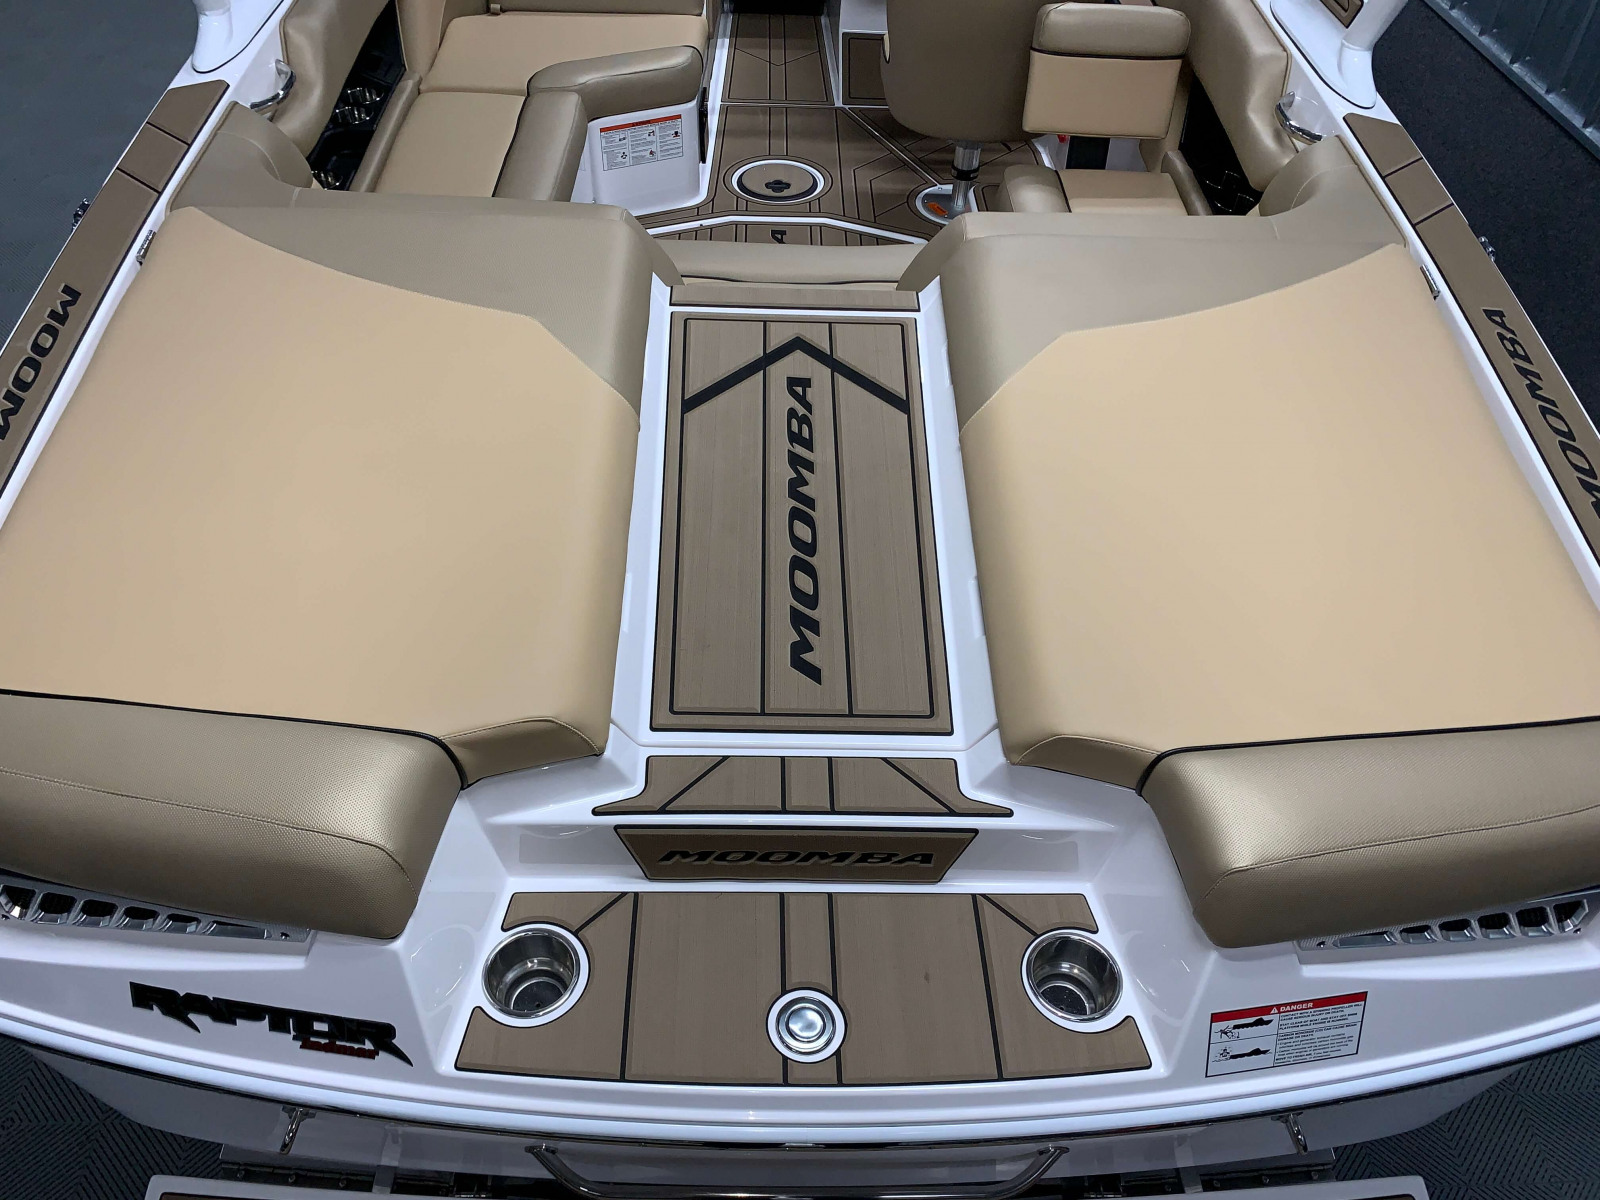 Transom Walk-Through Design of the 2021 Moomba Mondo Wake Boat